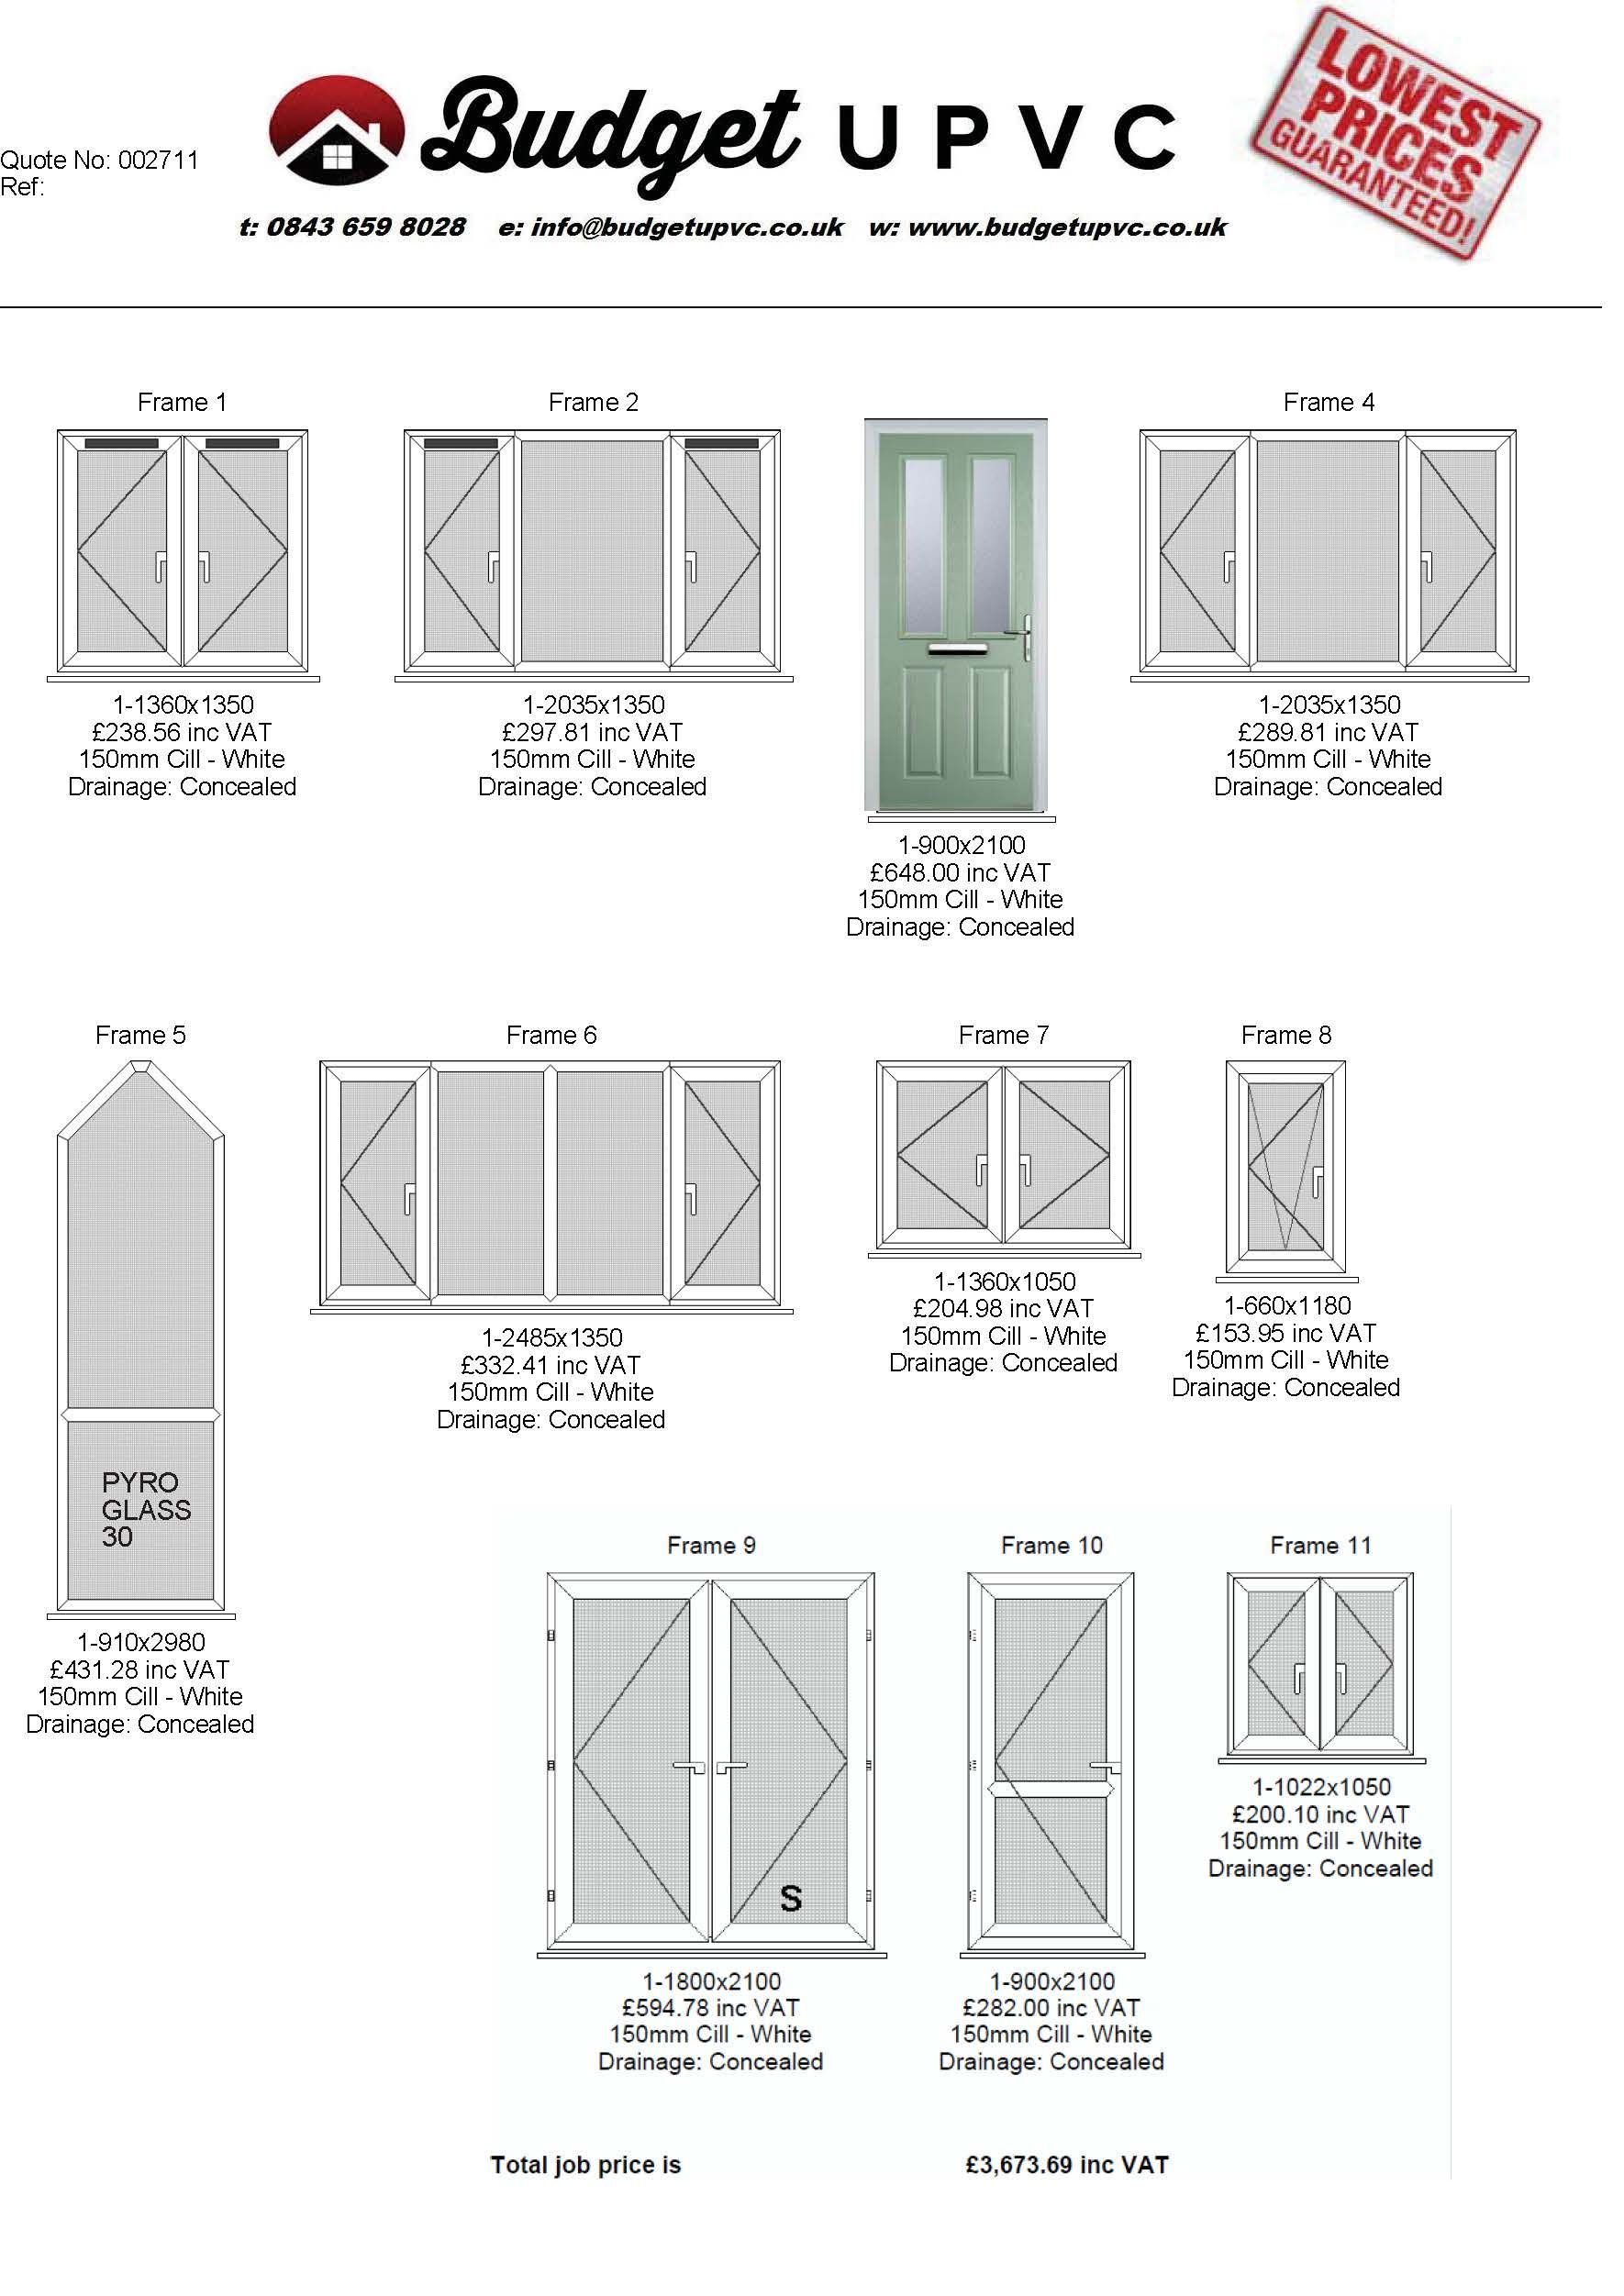 budget upvc are the united kingdoms largest supplier of supply only